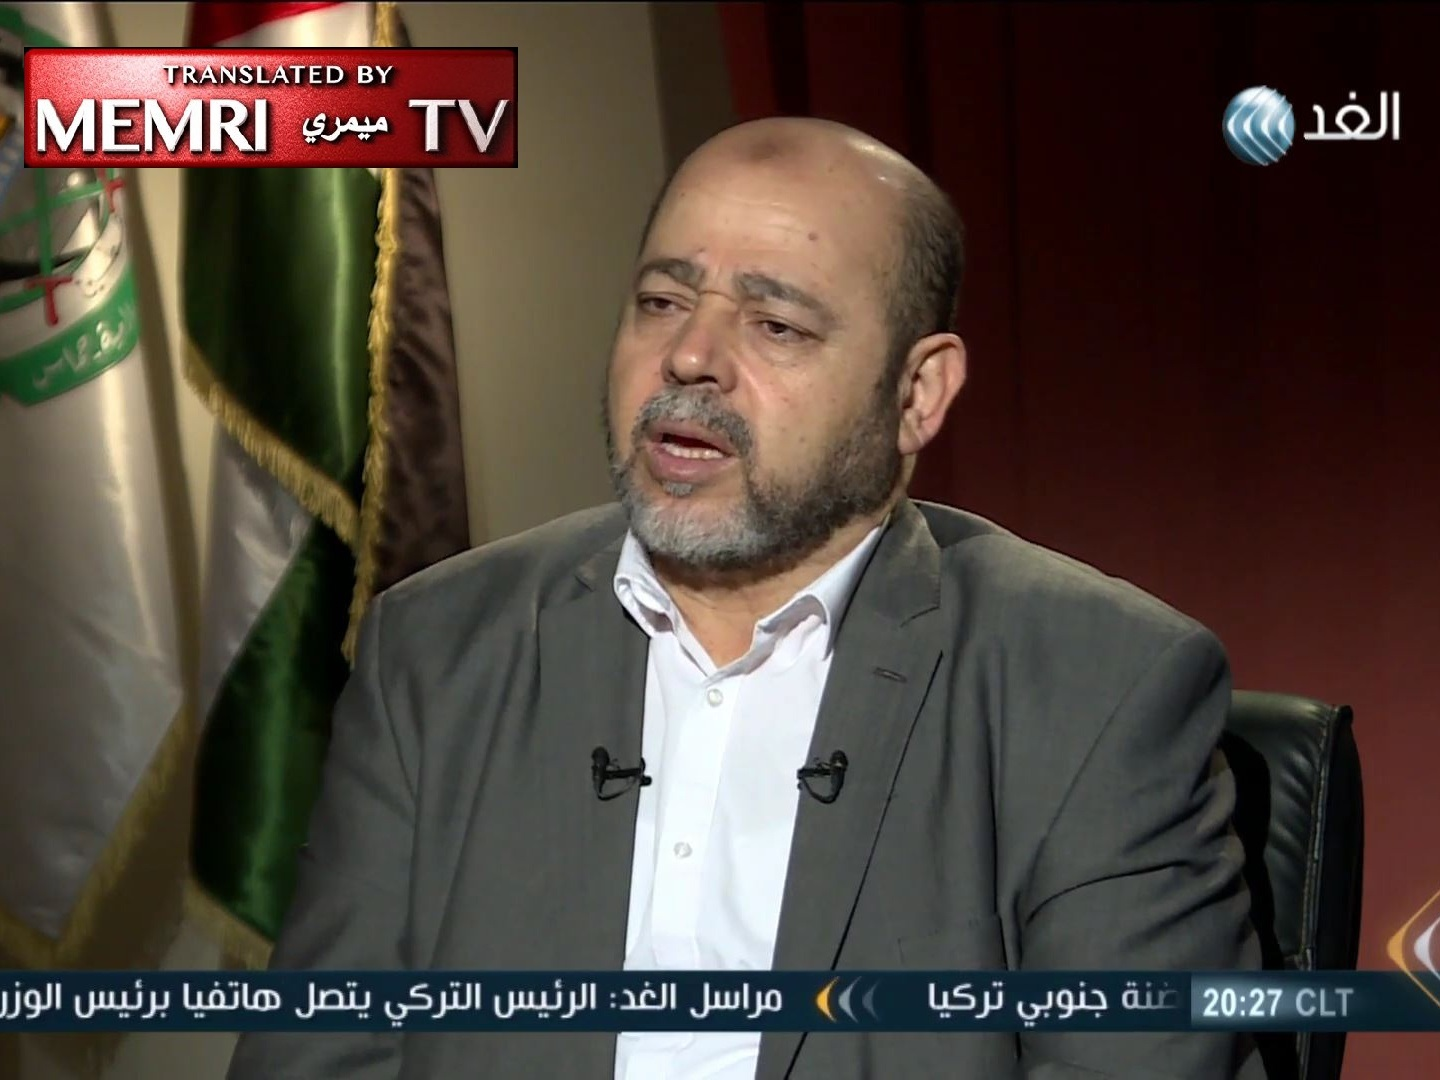 Deputy Head of Hamas Political Bureau Musa Abu Marzouq Envisions a Federal Palestinian State, Like Switzerland or the U.S.